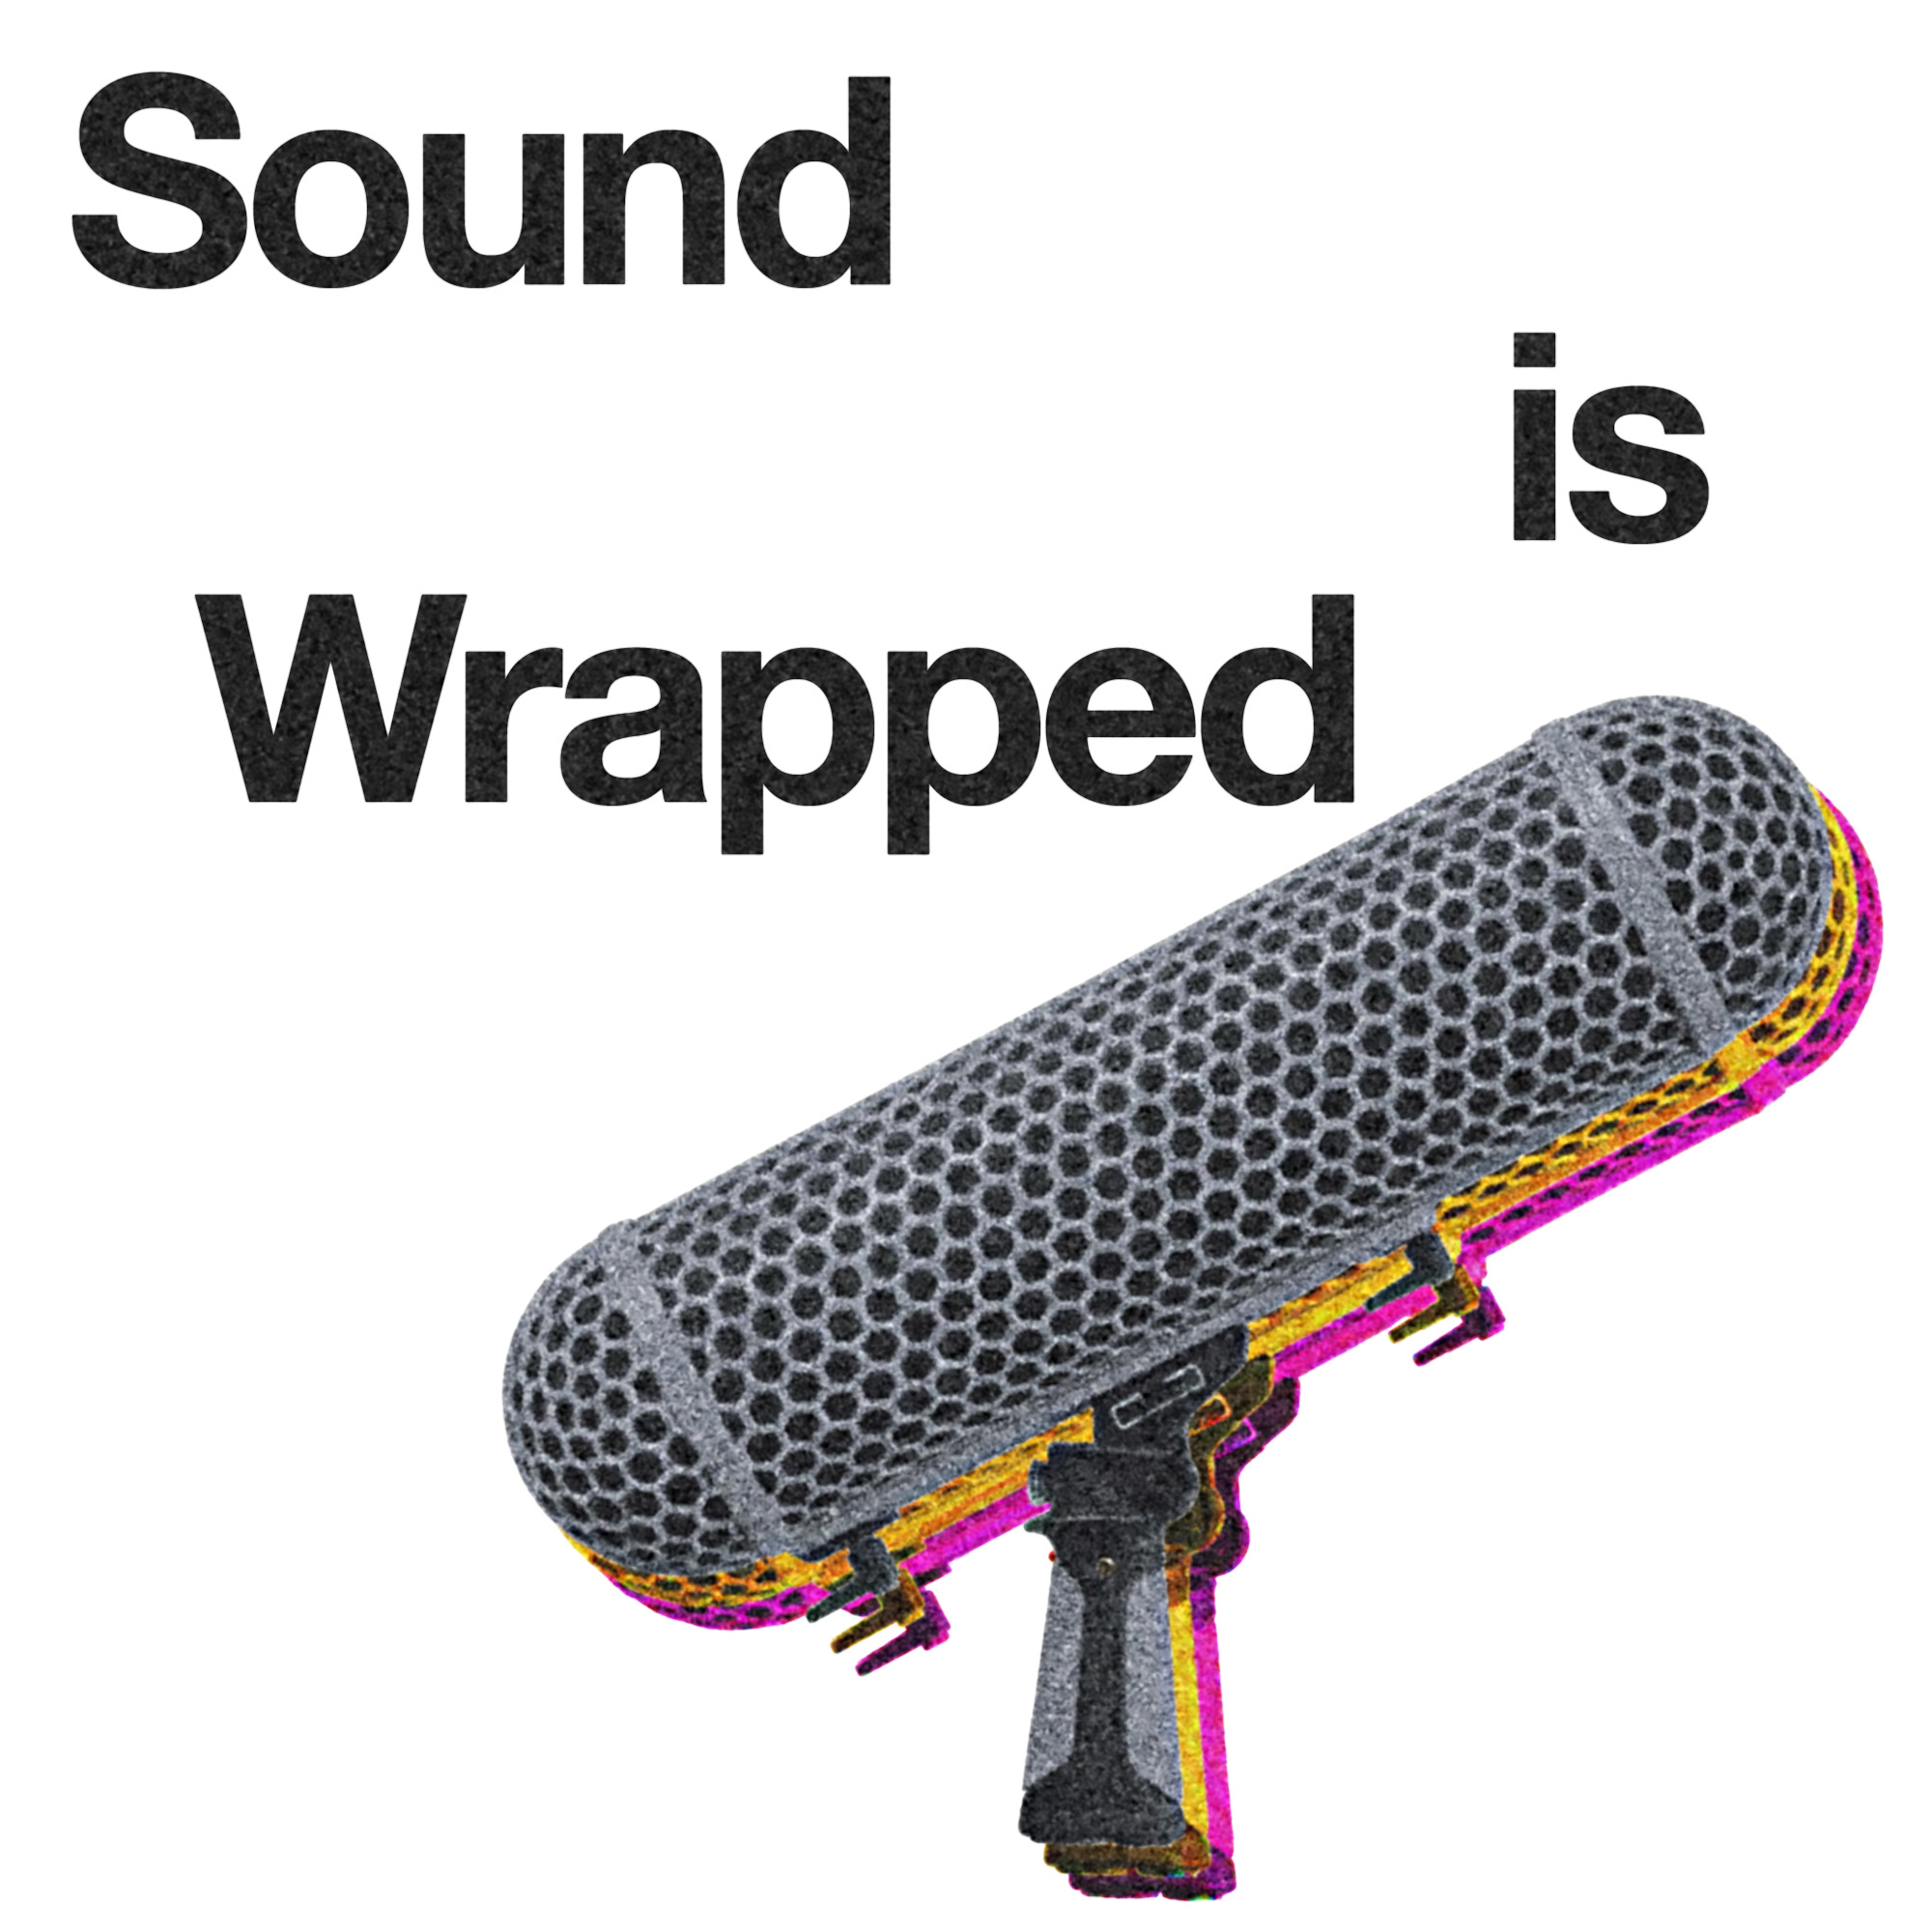 Sound is Wrapped